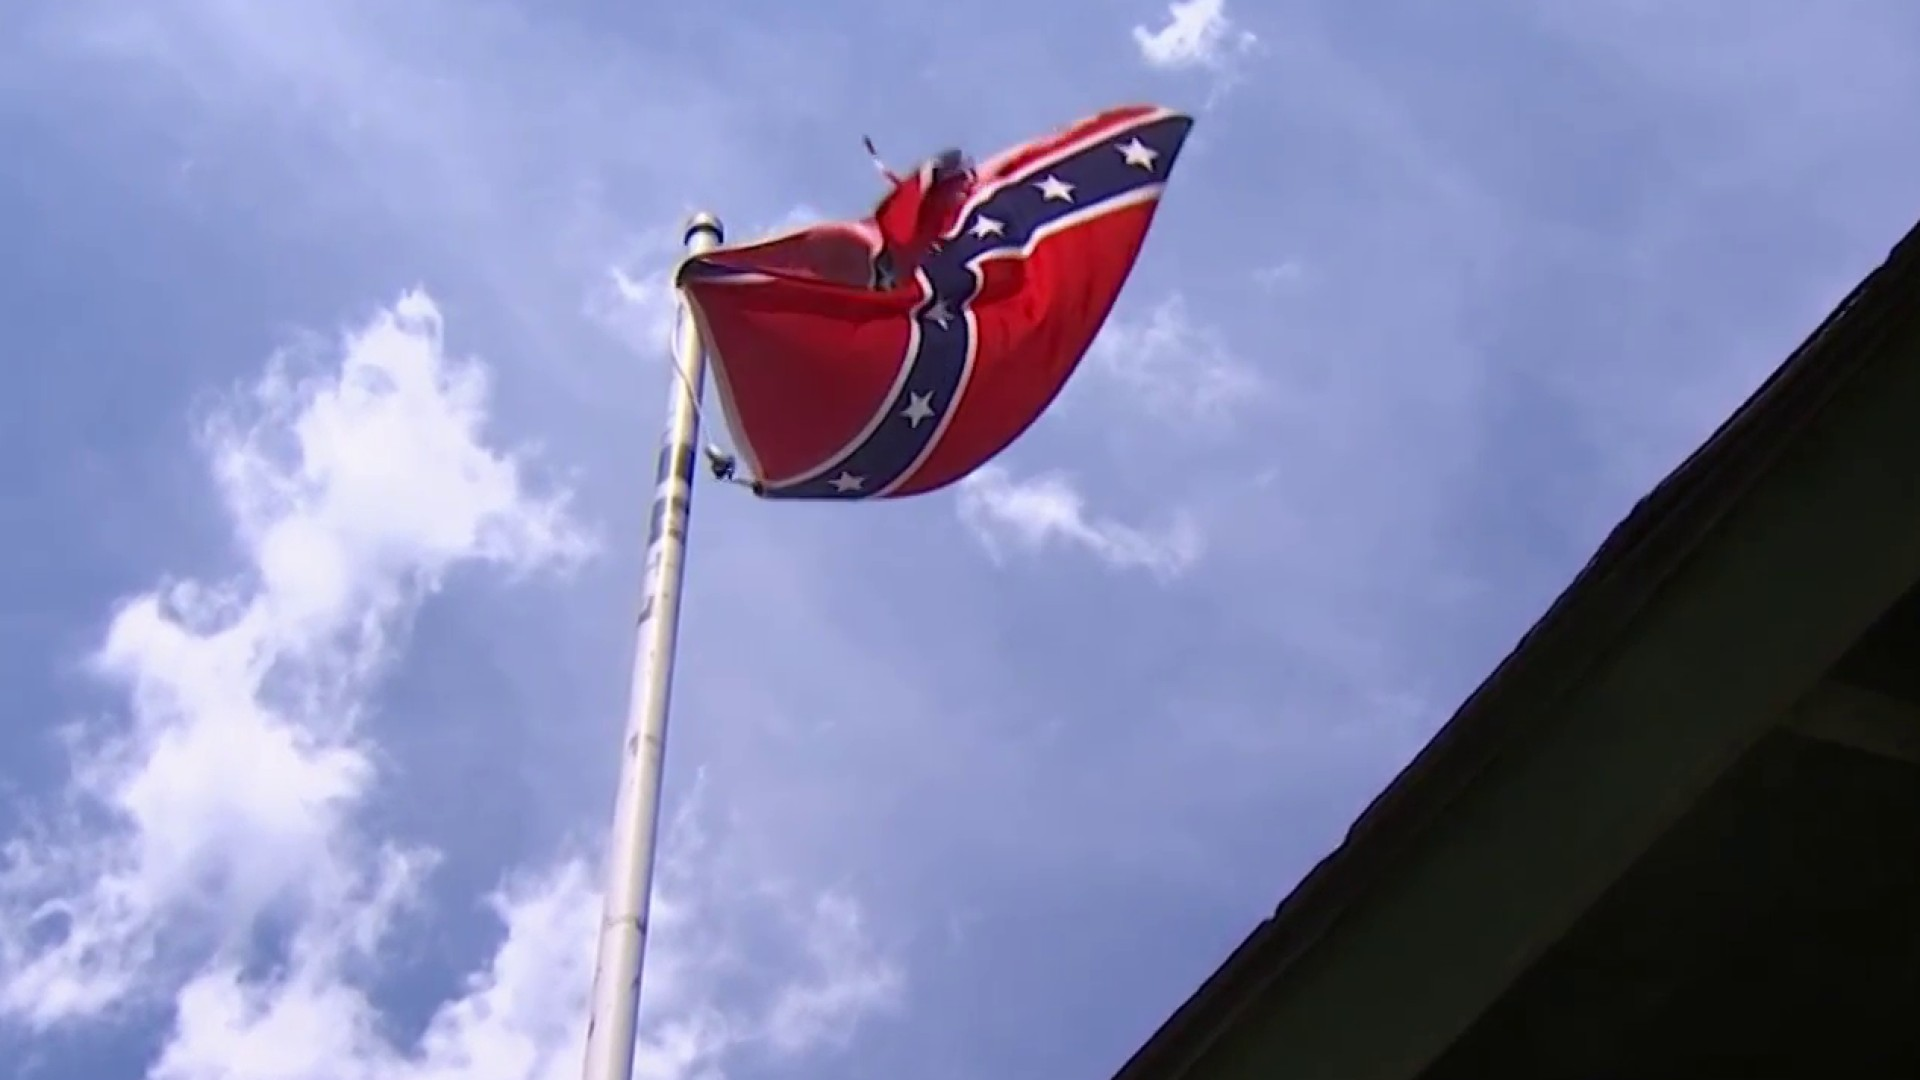 Mistake Allowed Confederate Flag to Fly on County Property for Years